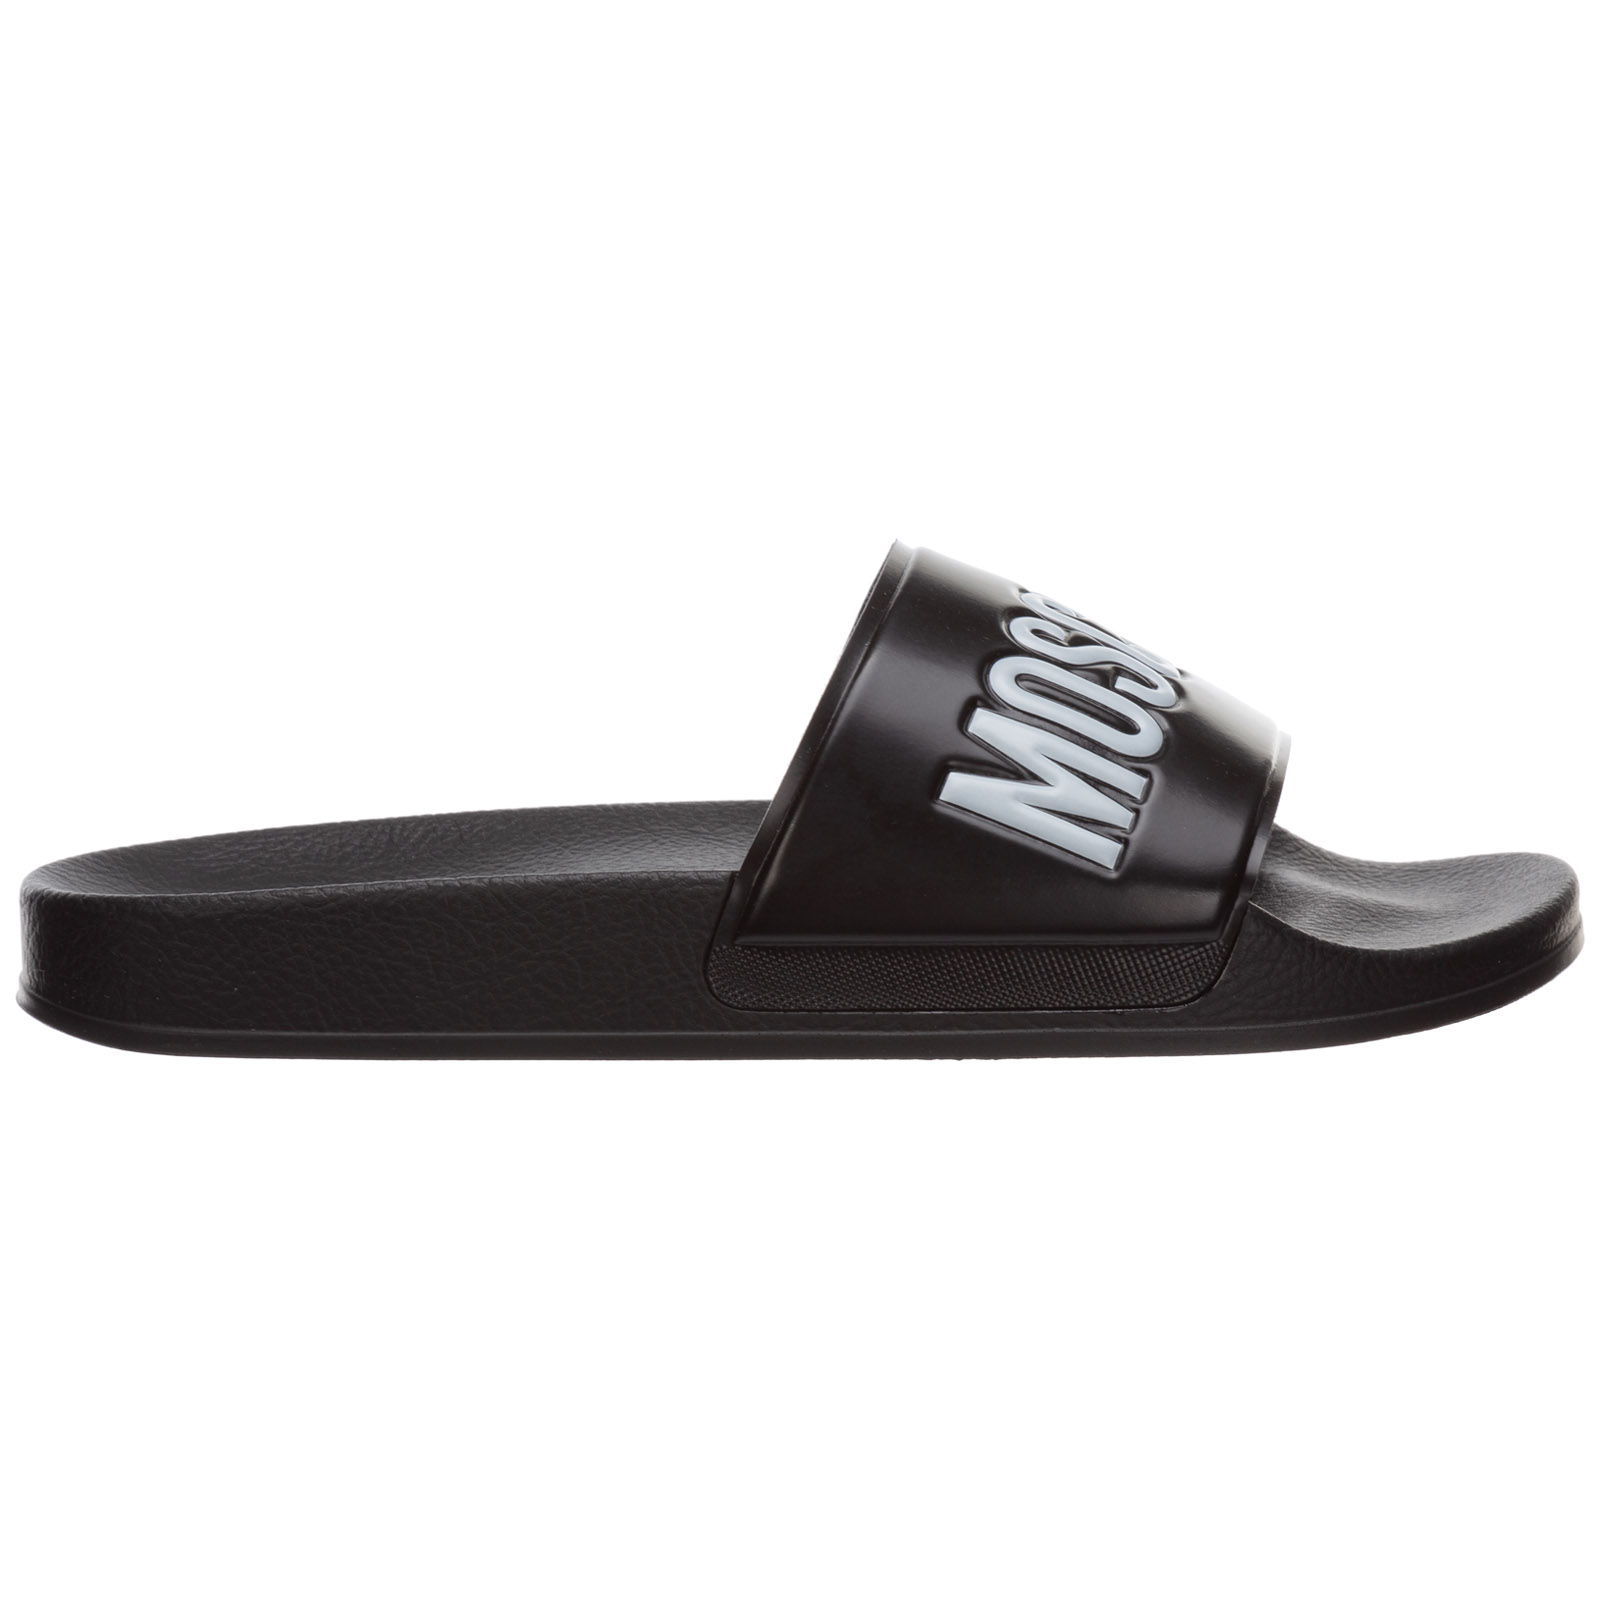 Moschino MEN'S SLIPPERS SANDALS RUBBER